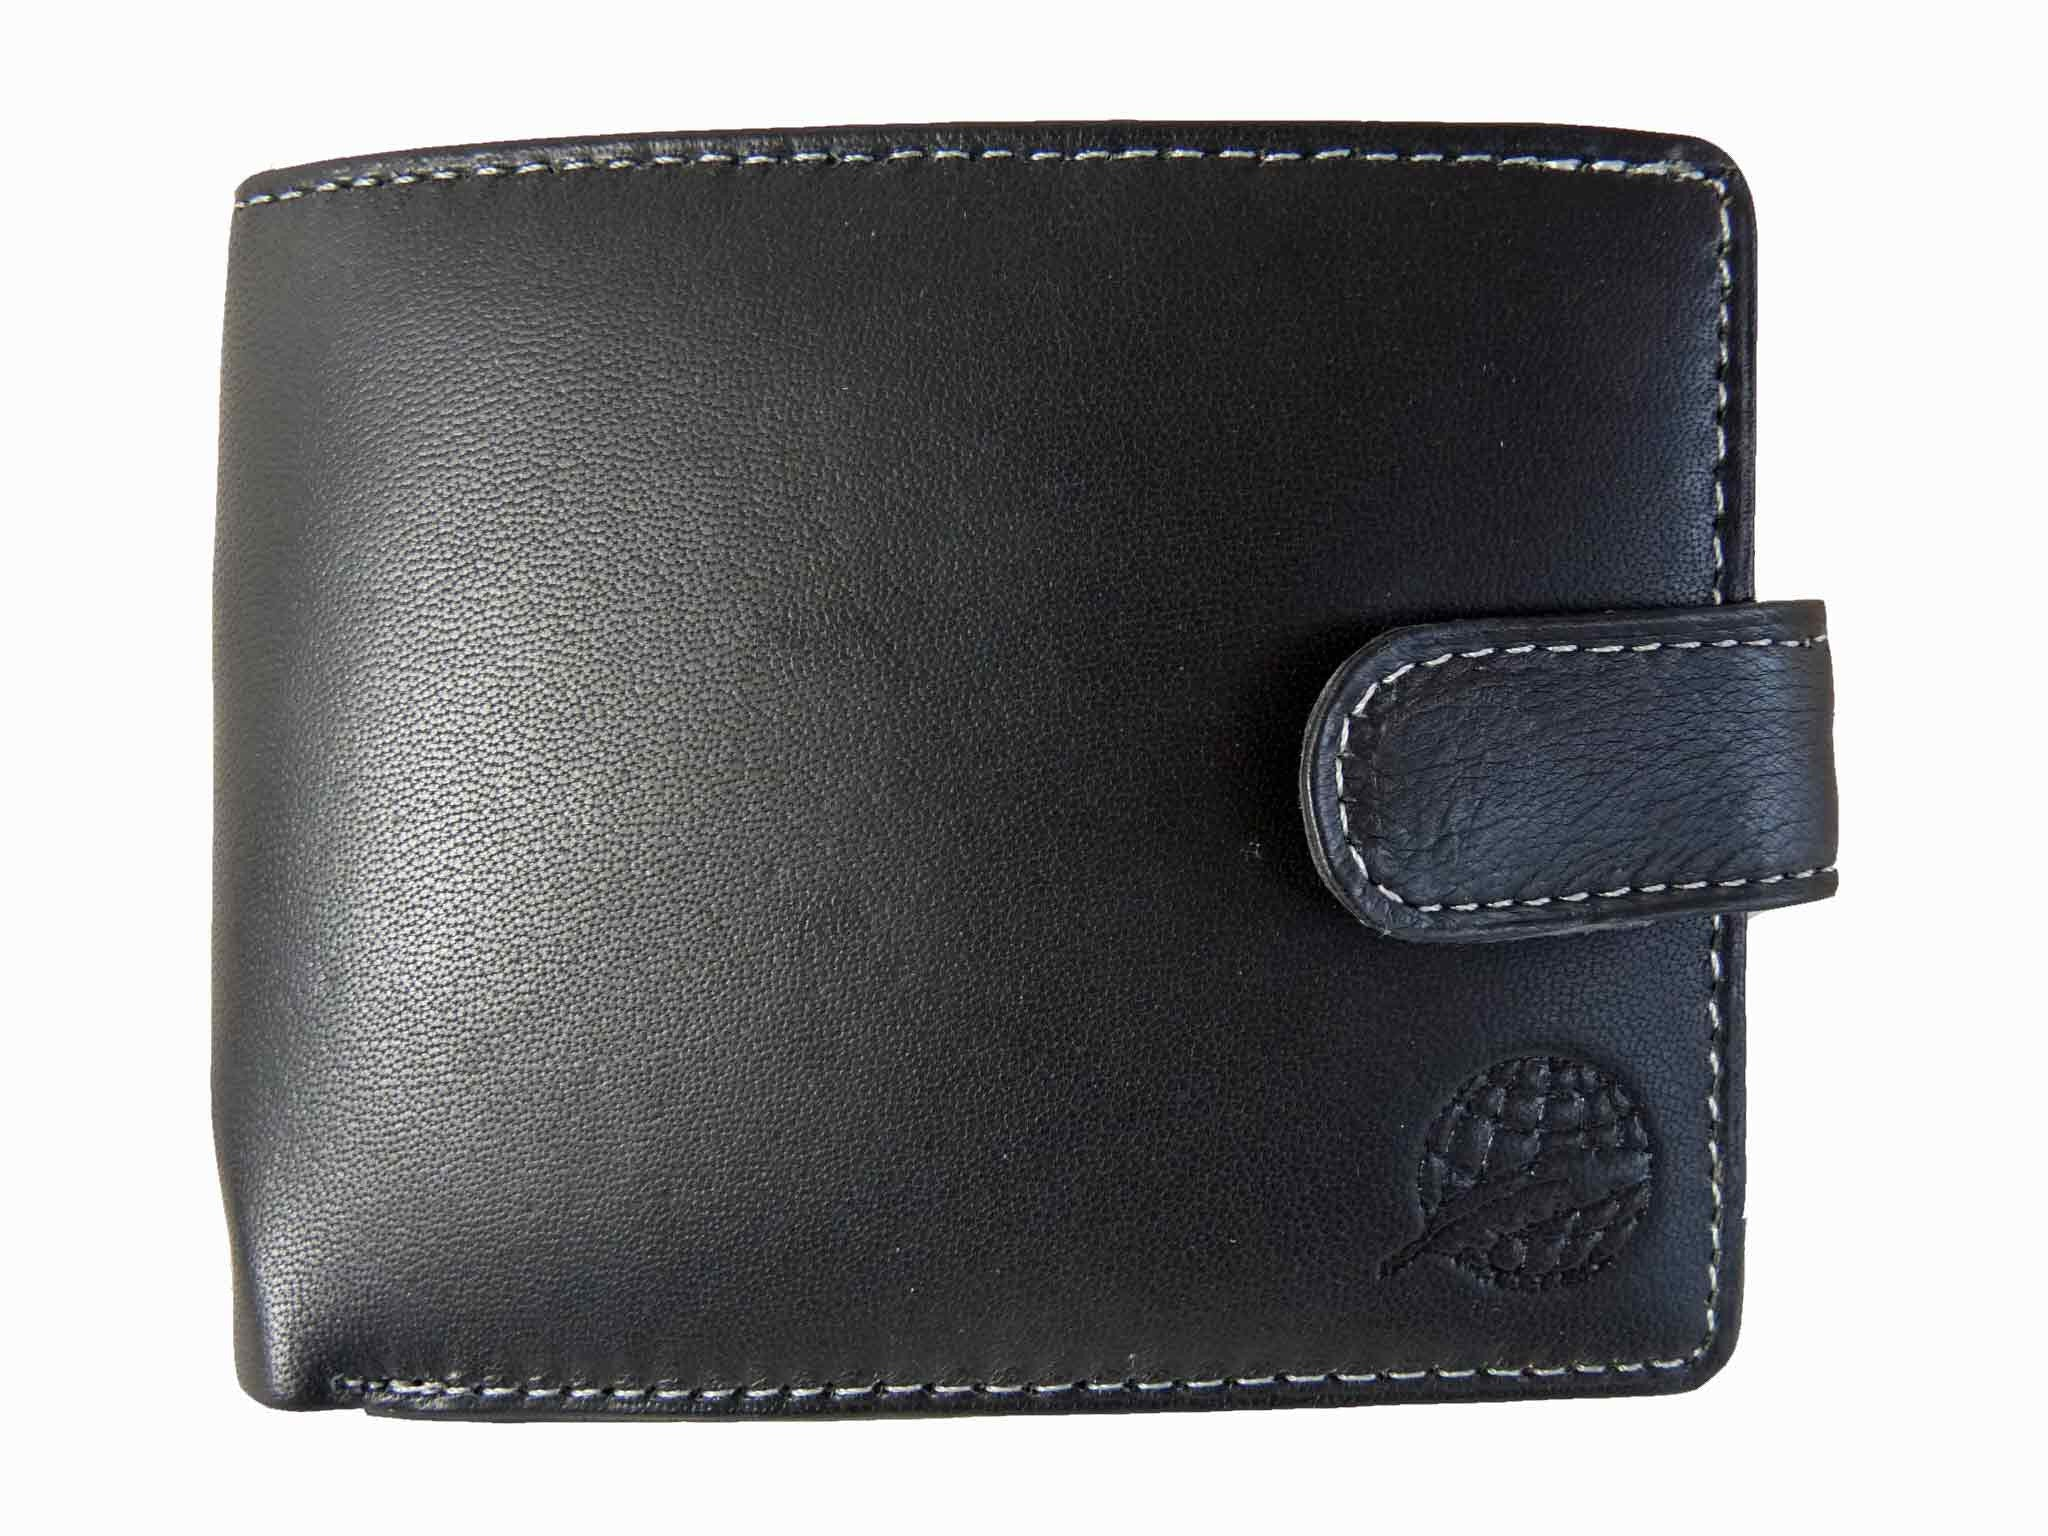 Mens Leather Wallet Credit Cards Black RL507 front view